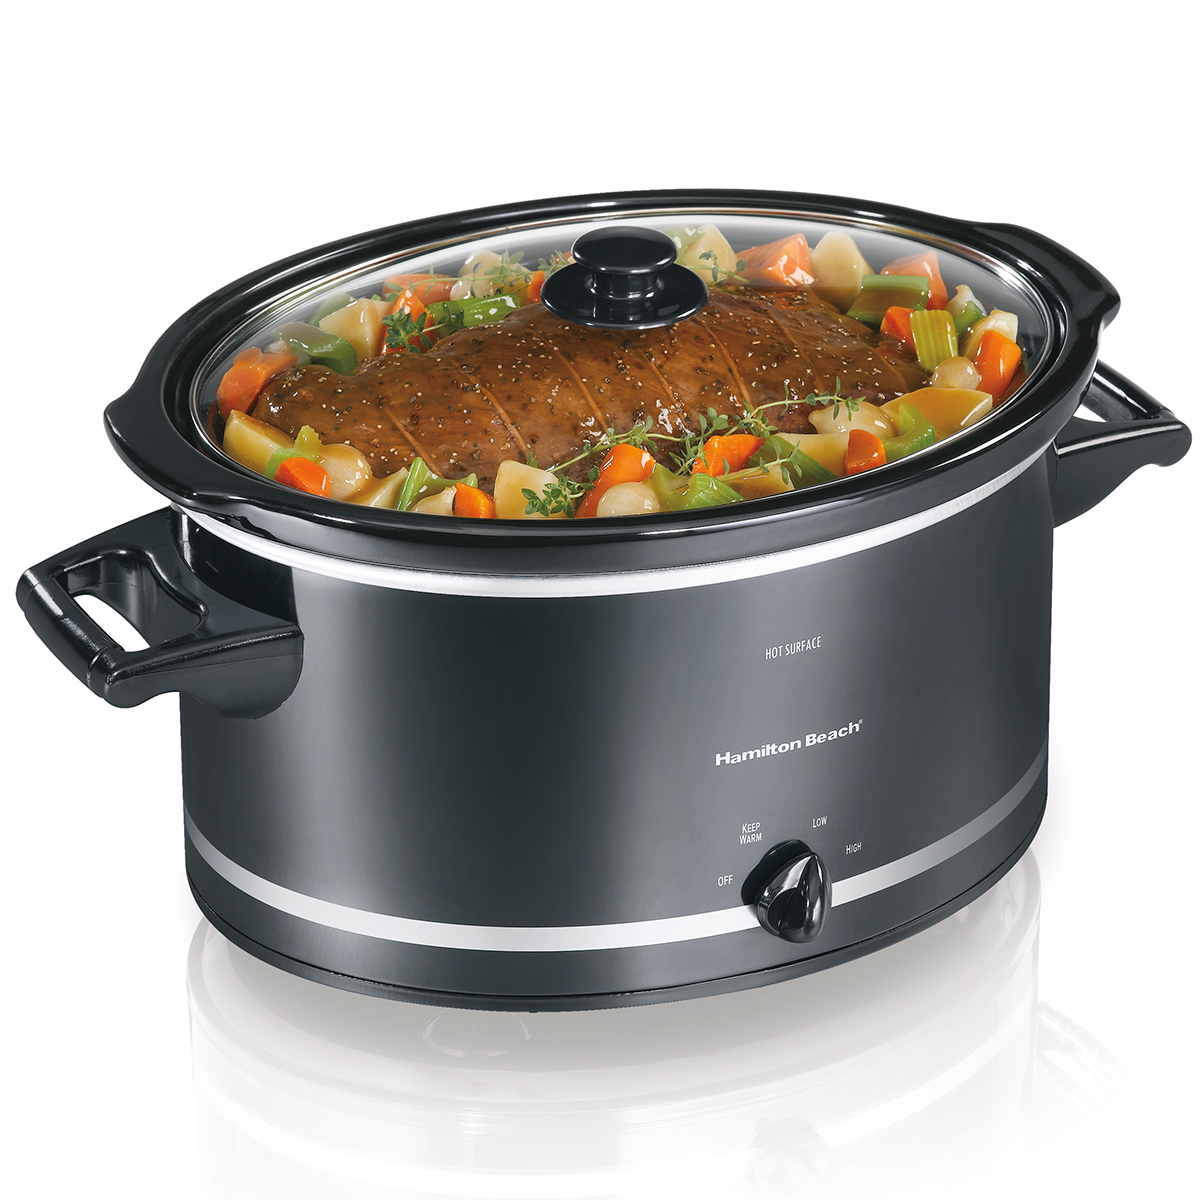 8 Quart Slow Cooker (33182)